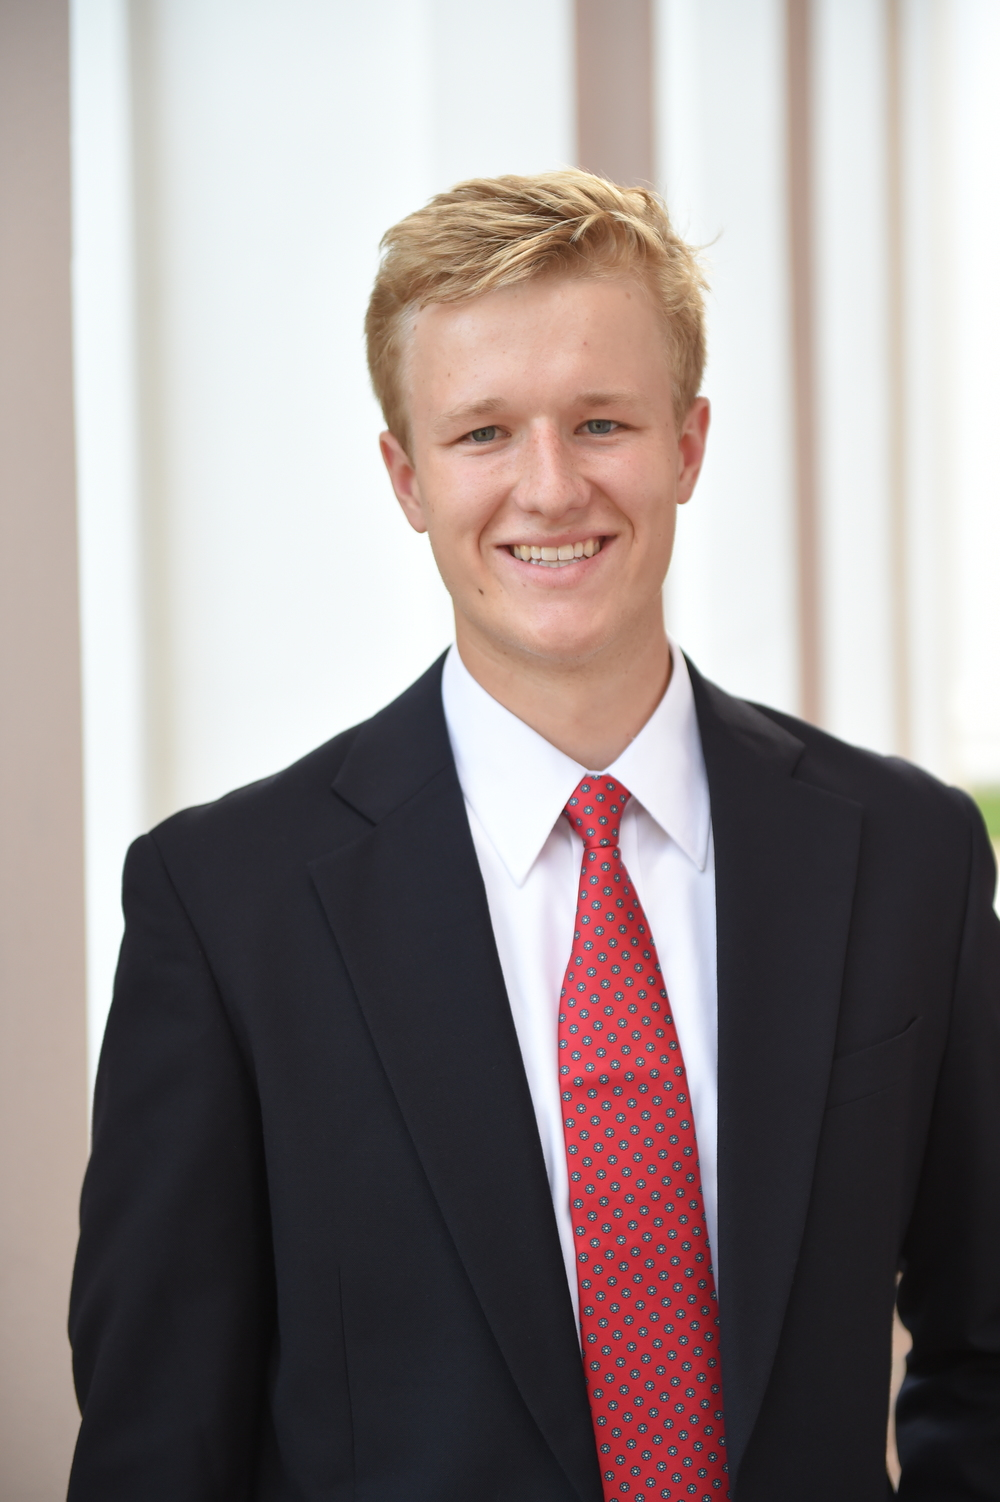 ANDREW McCAFFERY '16 GENERAL CHAIR